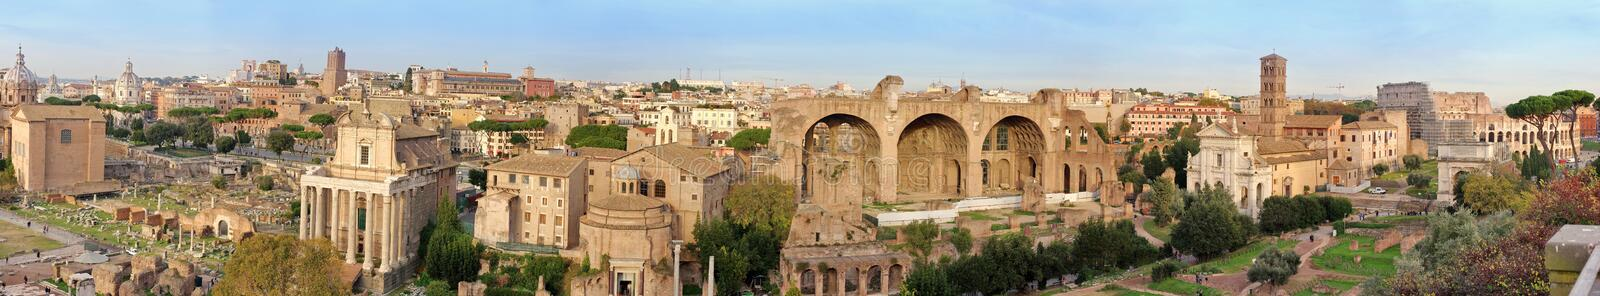 Landmark attraction in Rome: Roman Forum. Panoramic view over Rome, Italy royalty free stock photos